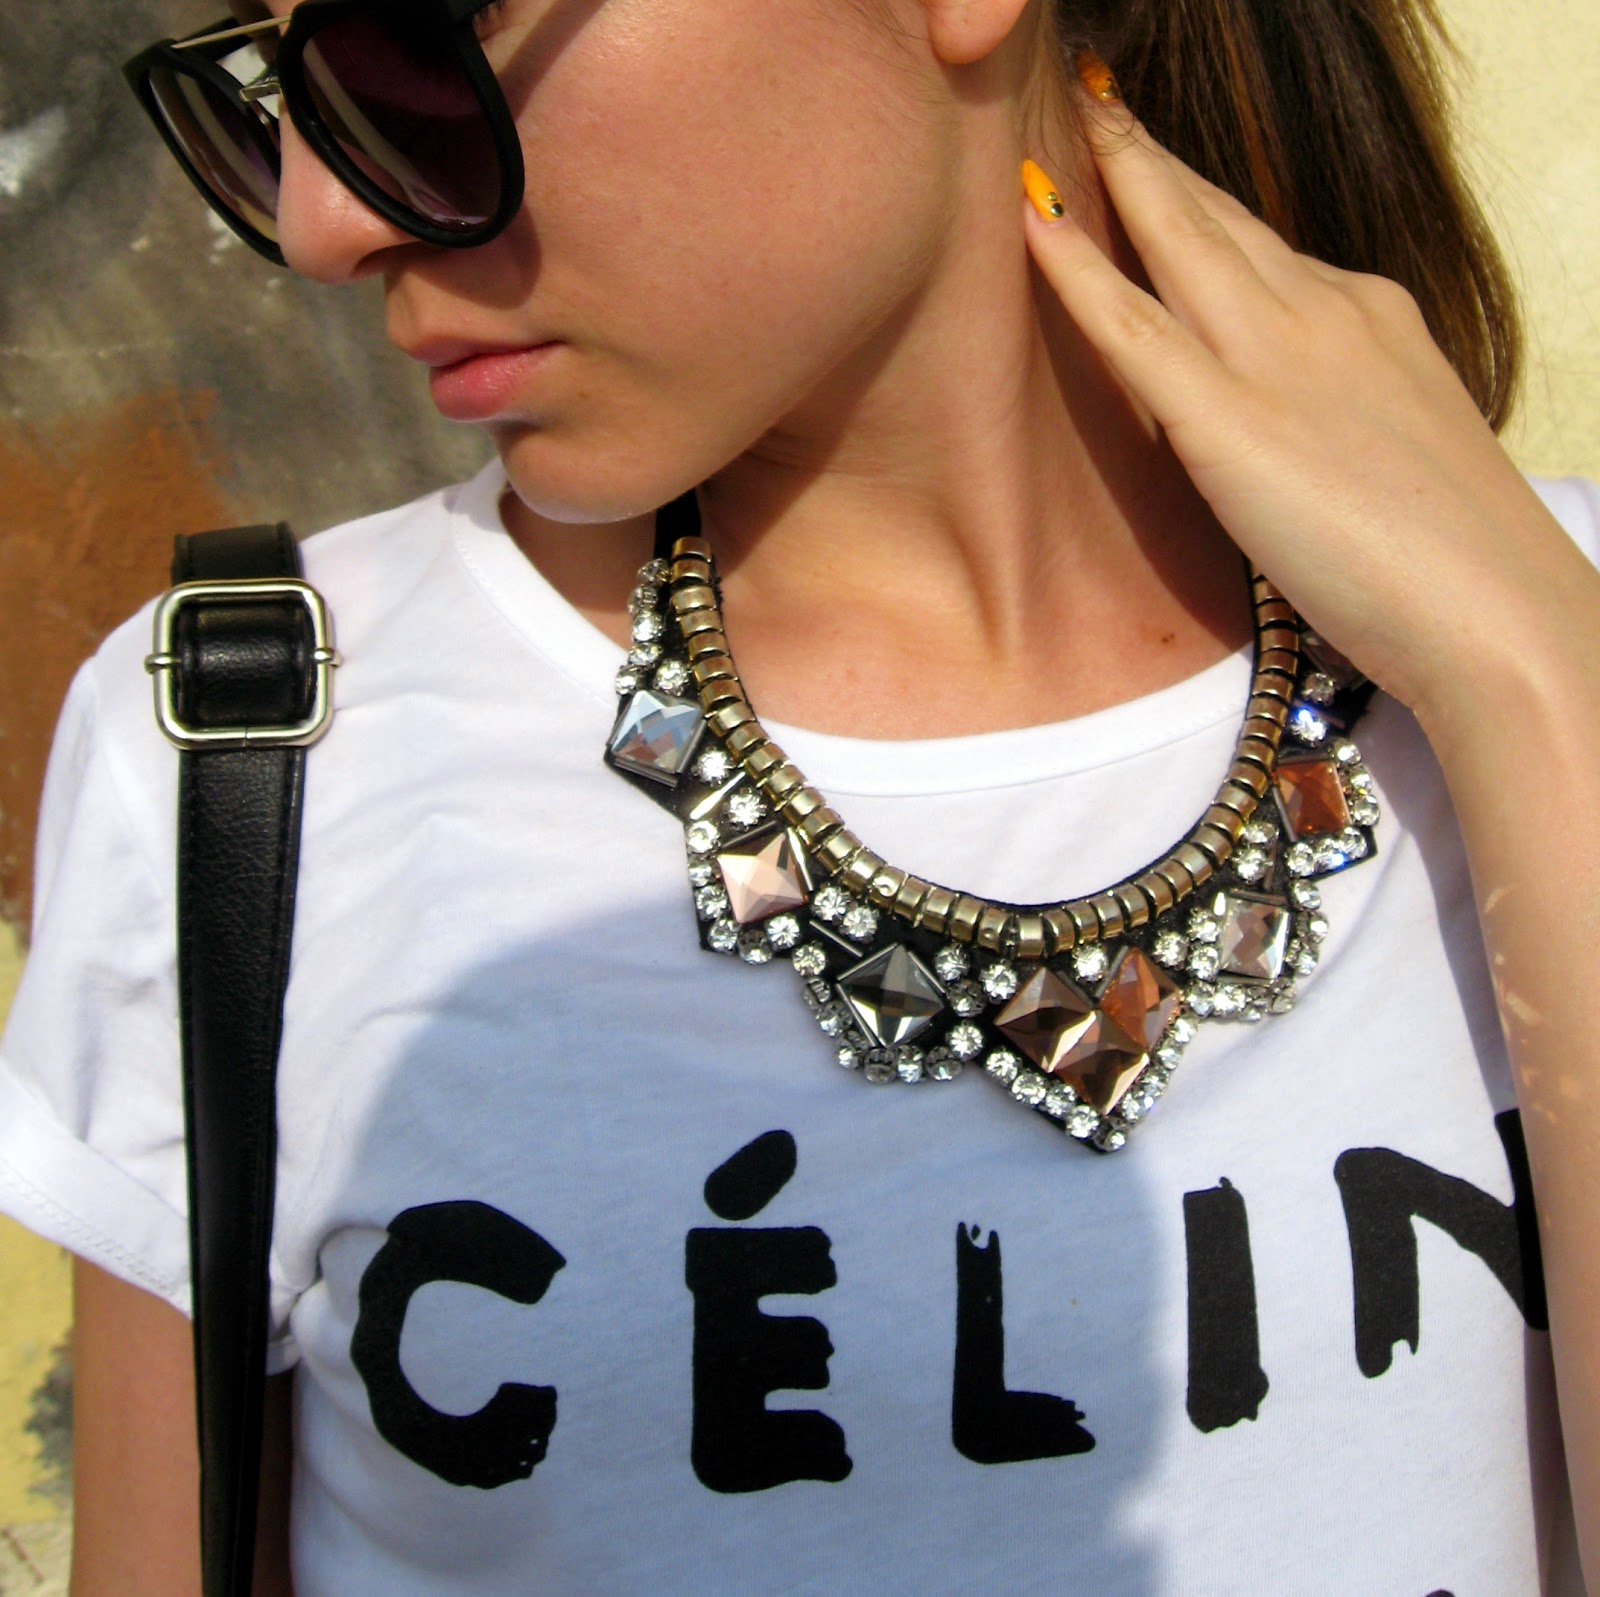 celine t shirt, boyfriend jeans, DIY chain cut boots, carpisa black studded bag, black cat eye sunglasses, sleek pony tail, statement necklace with white tee, bornprettystore.com jewelry and accessories